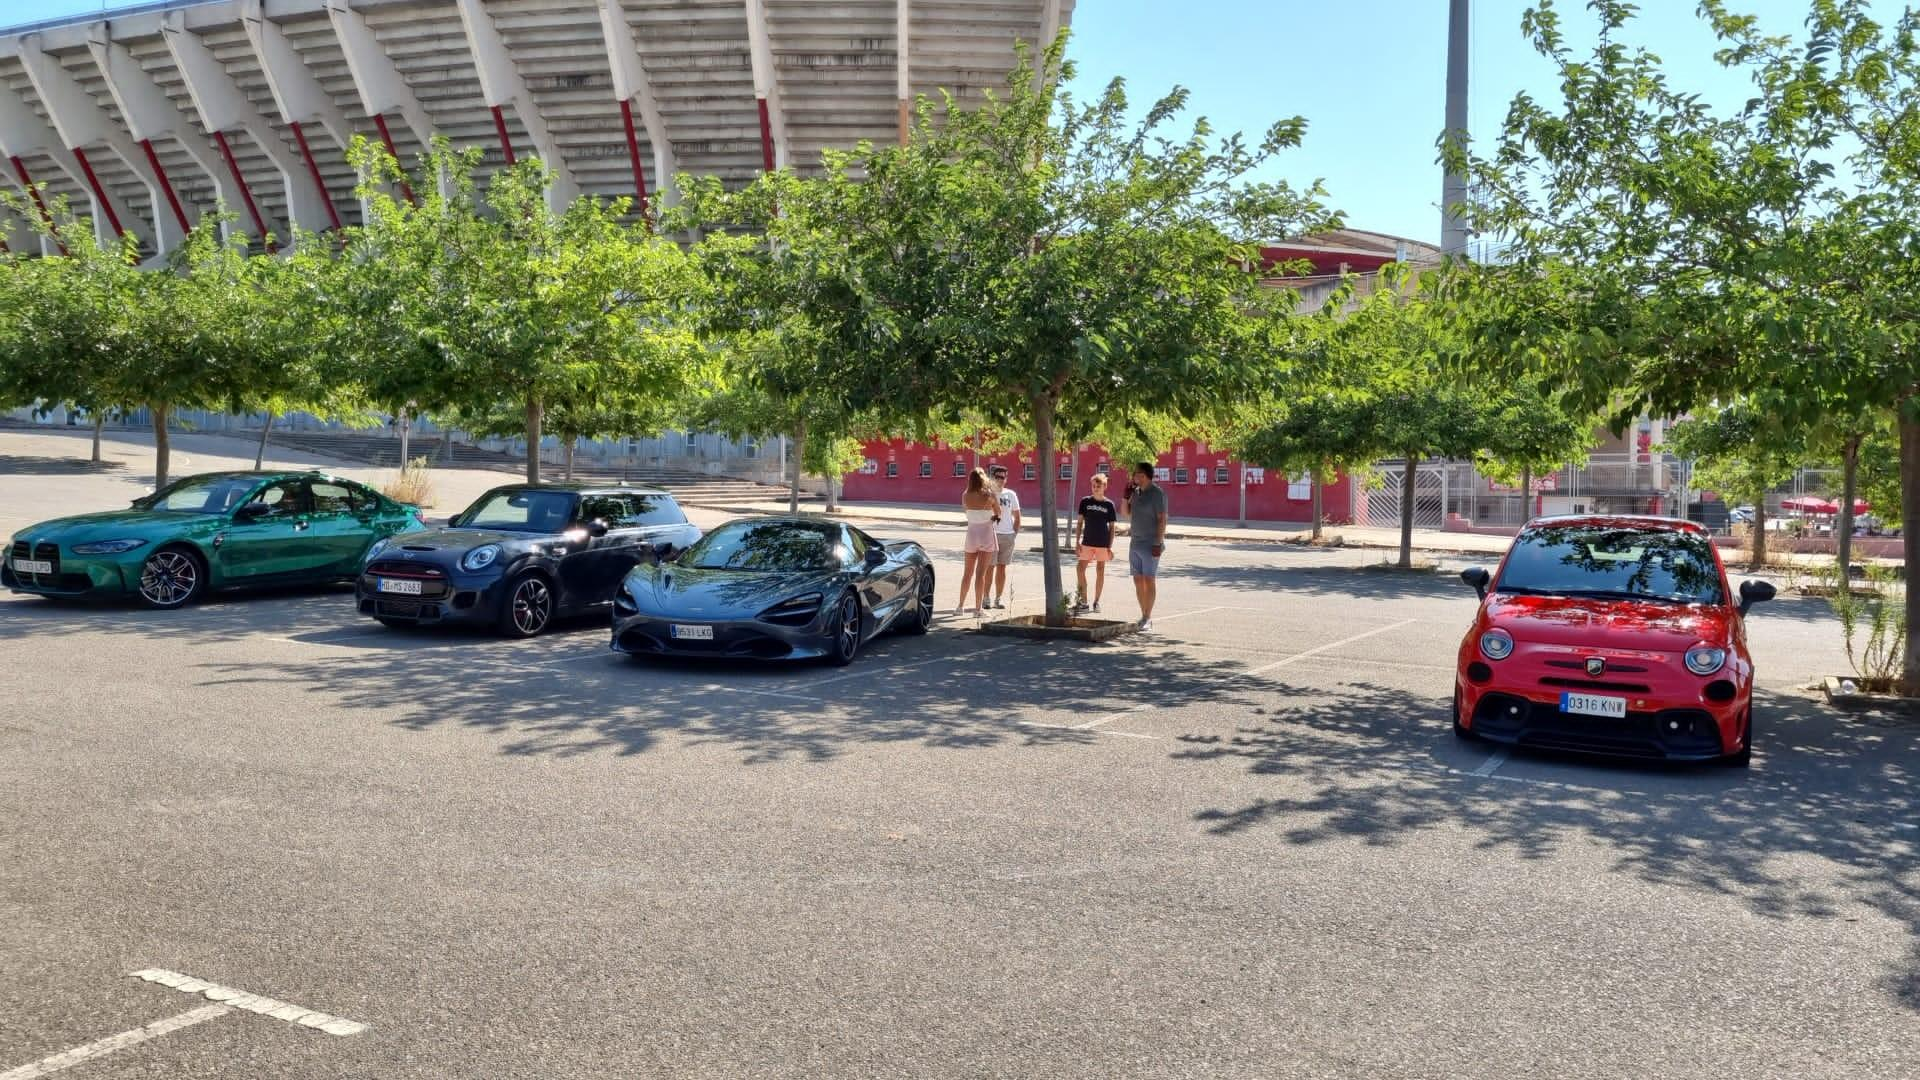 Meeting up at Son Moix wasn't that simple, lots of parking lots.